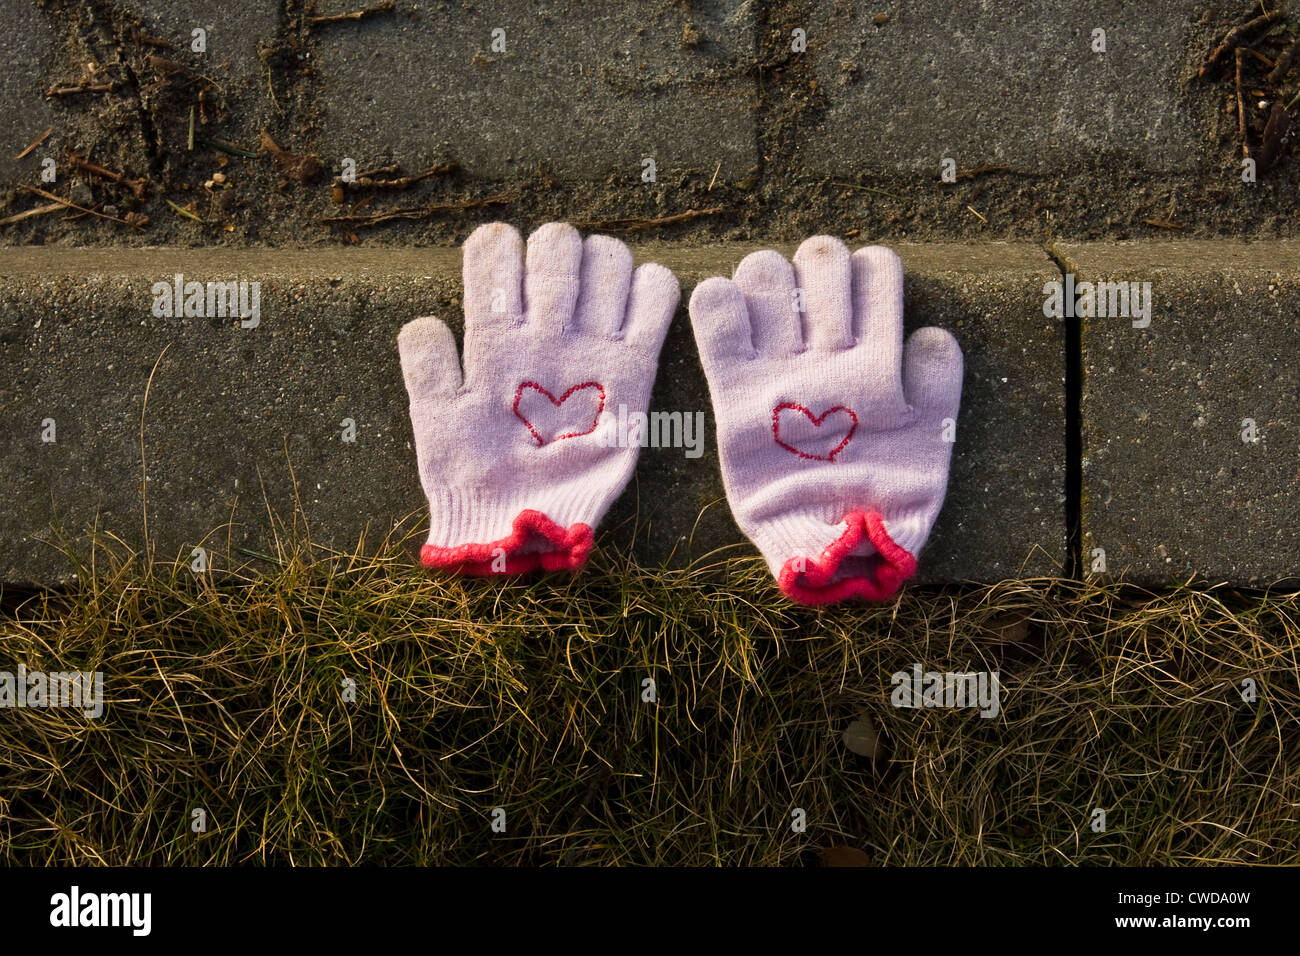 glove,lost property - Stock Image